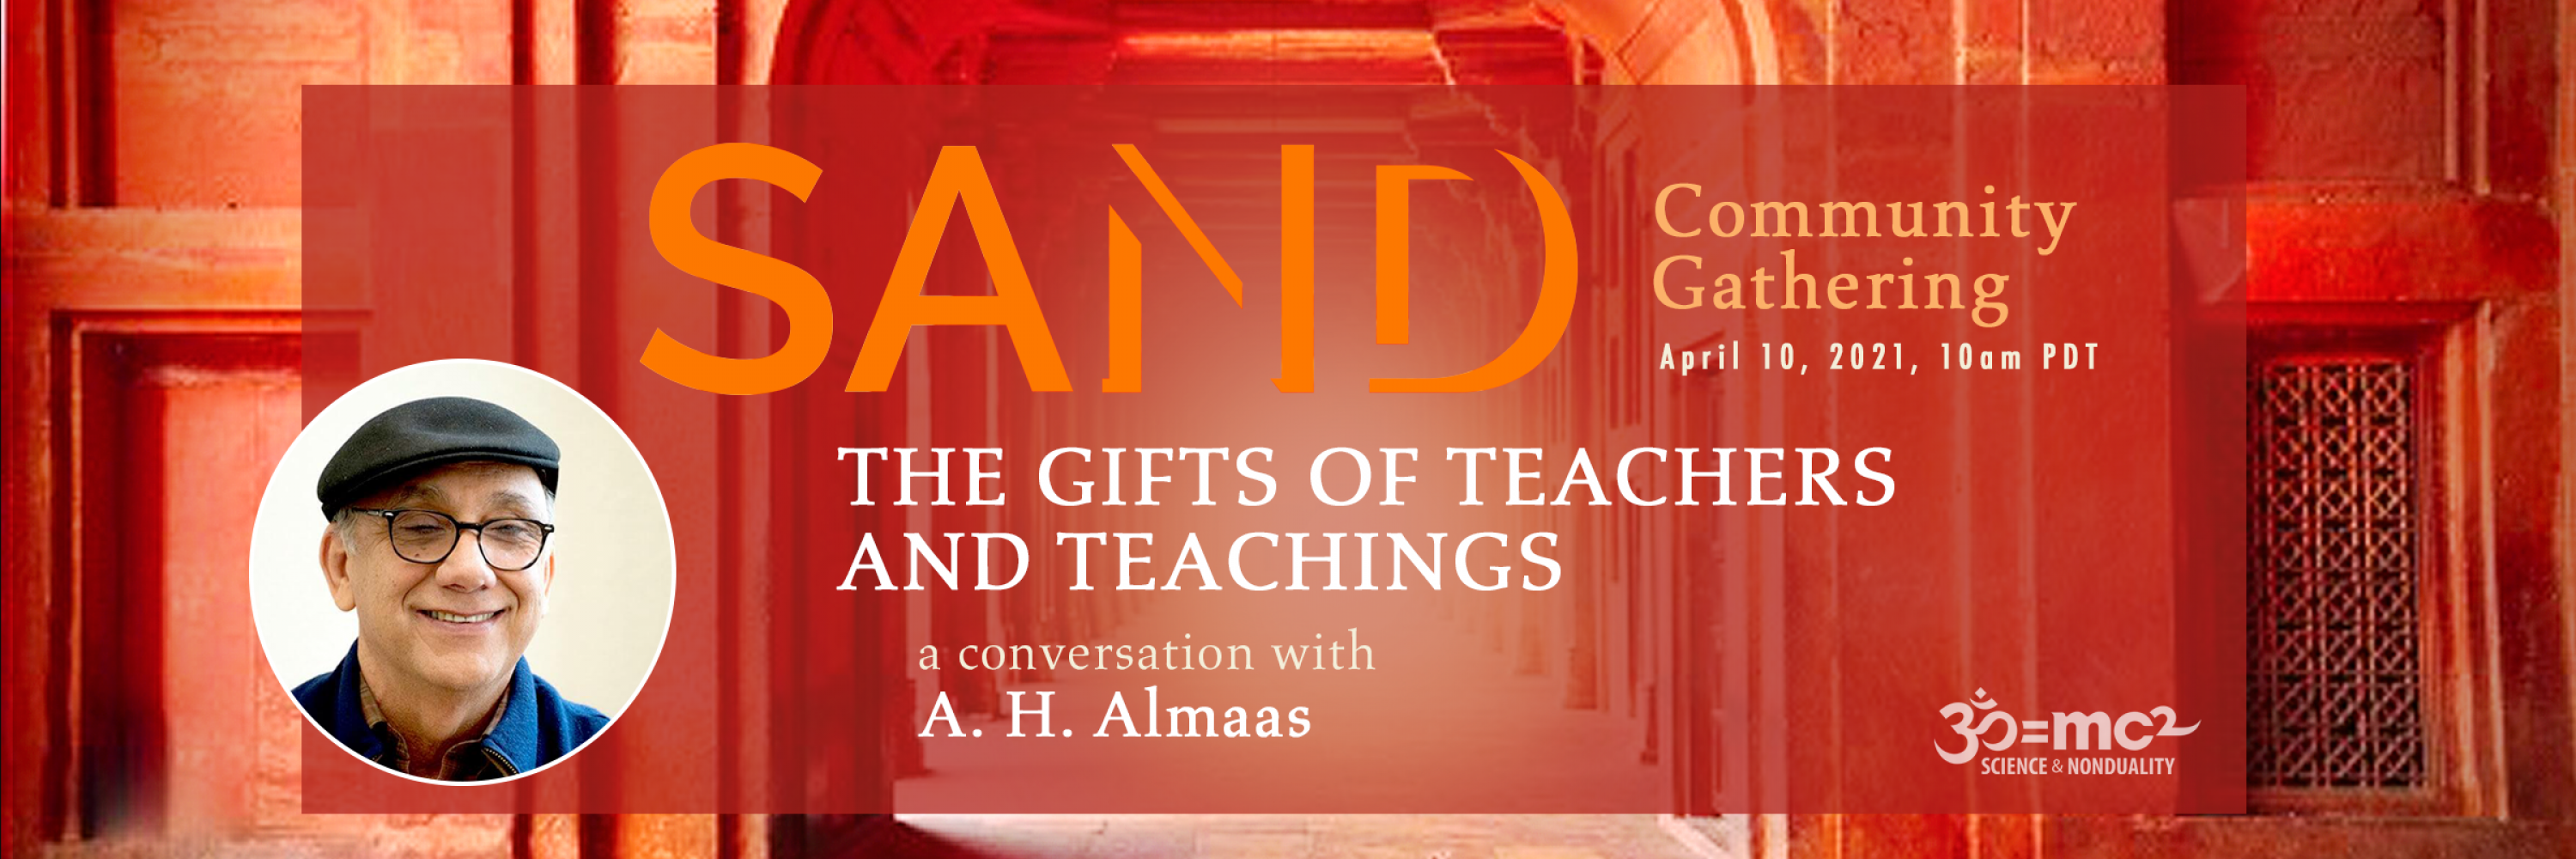 The Gifts of Teachers and Teachings